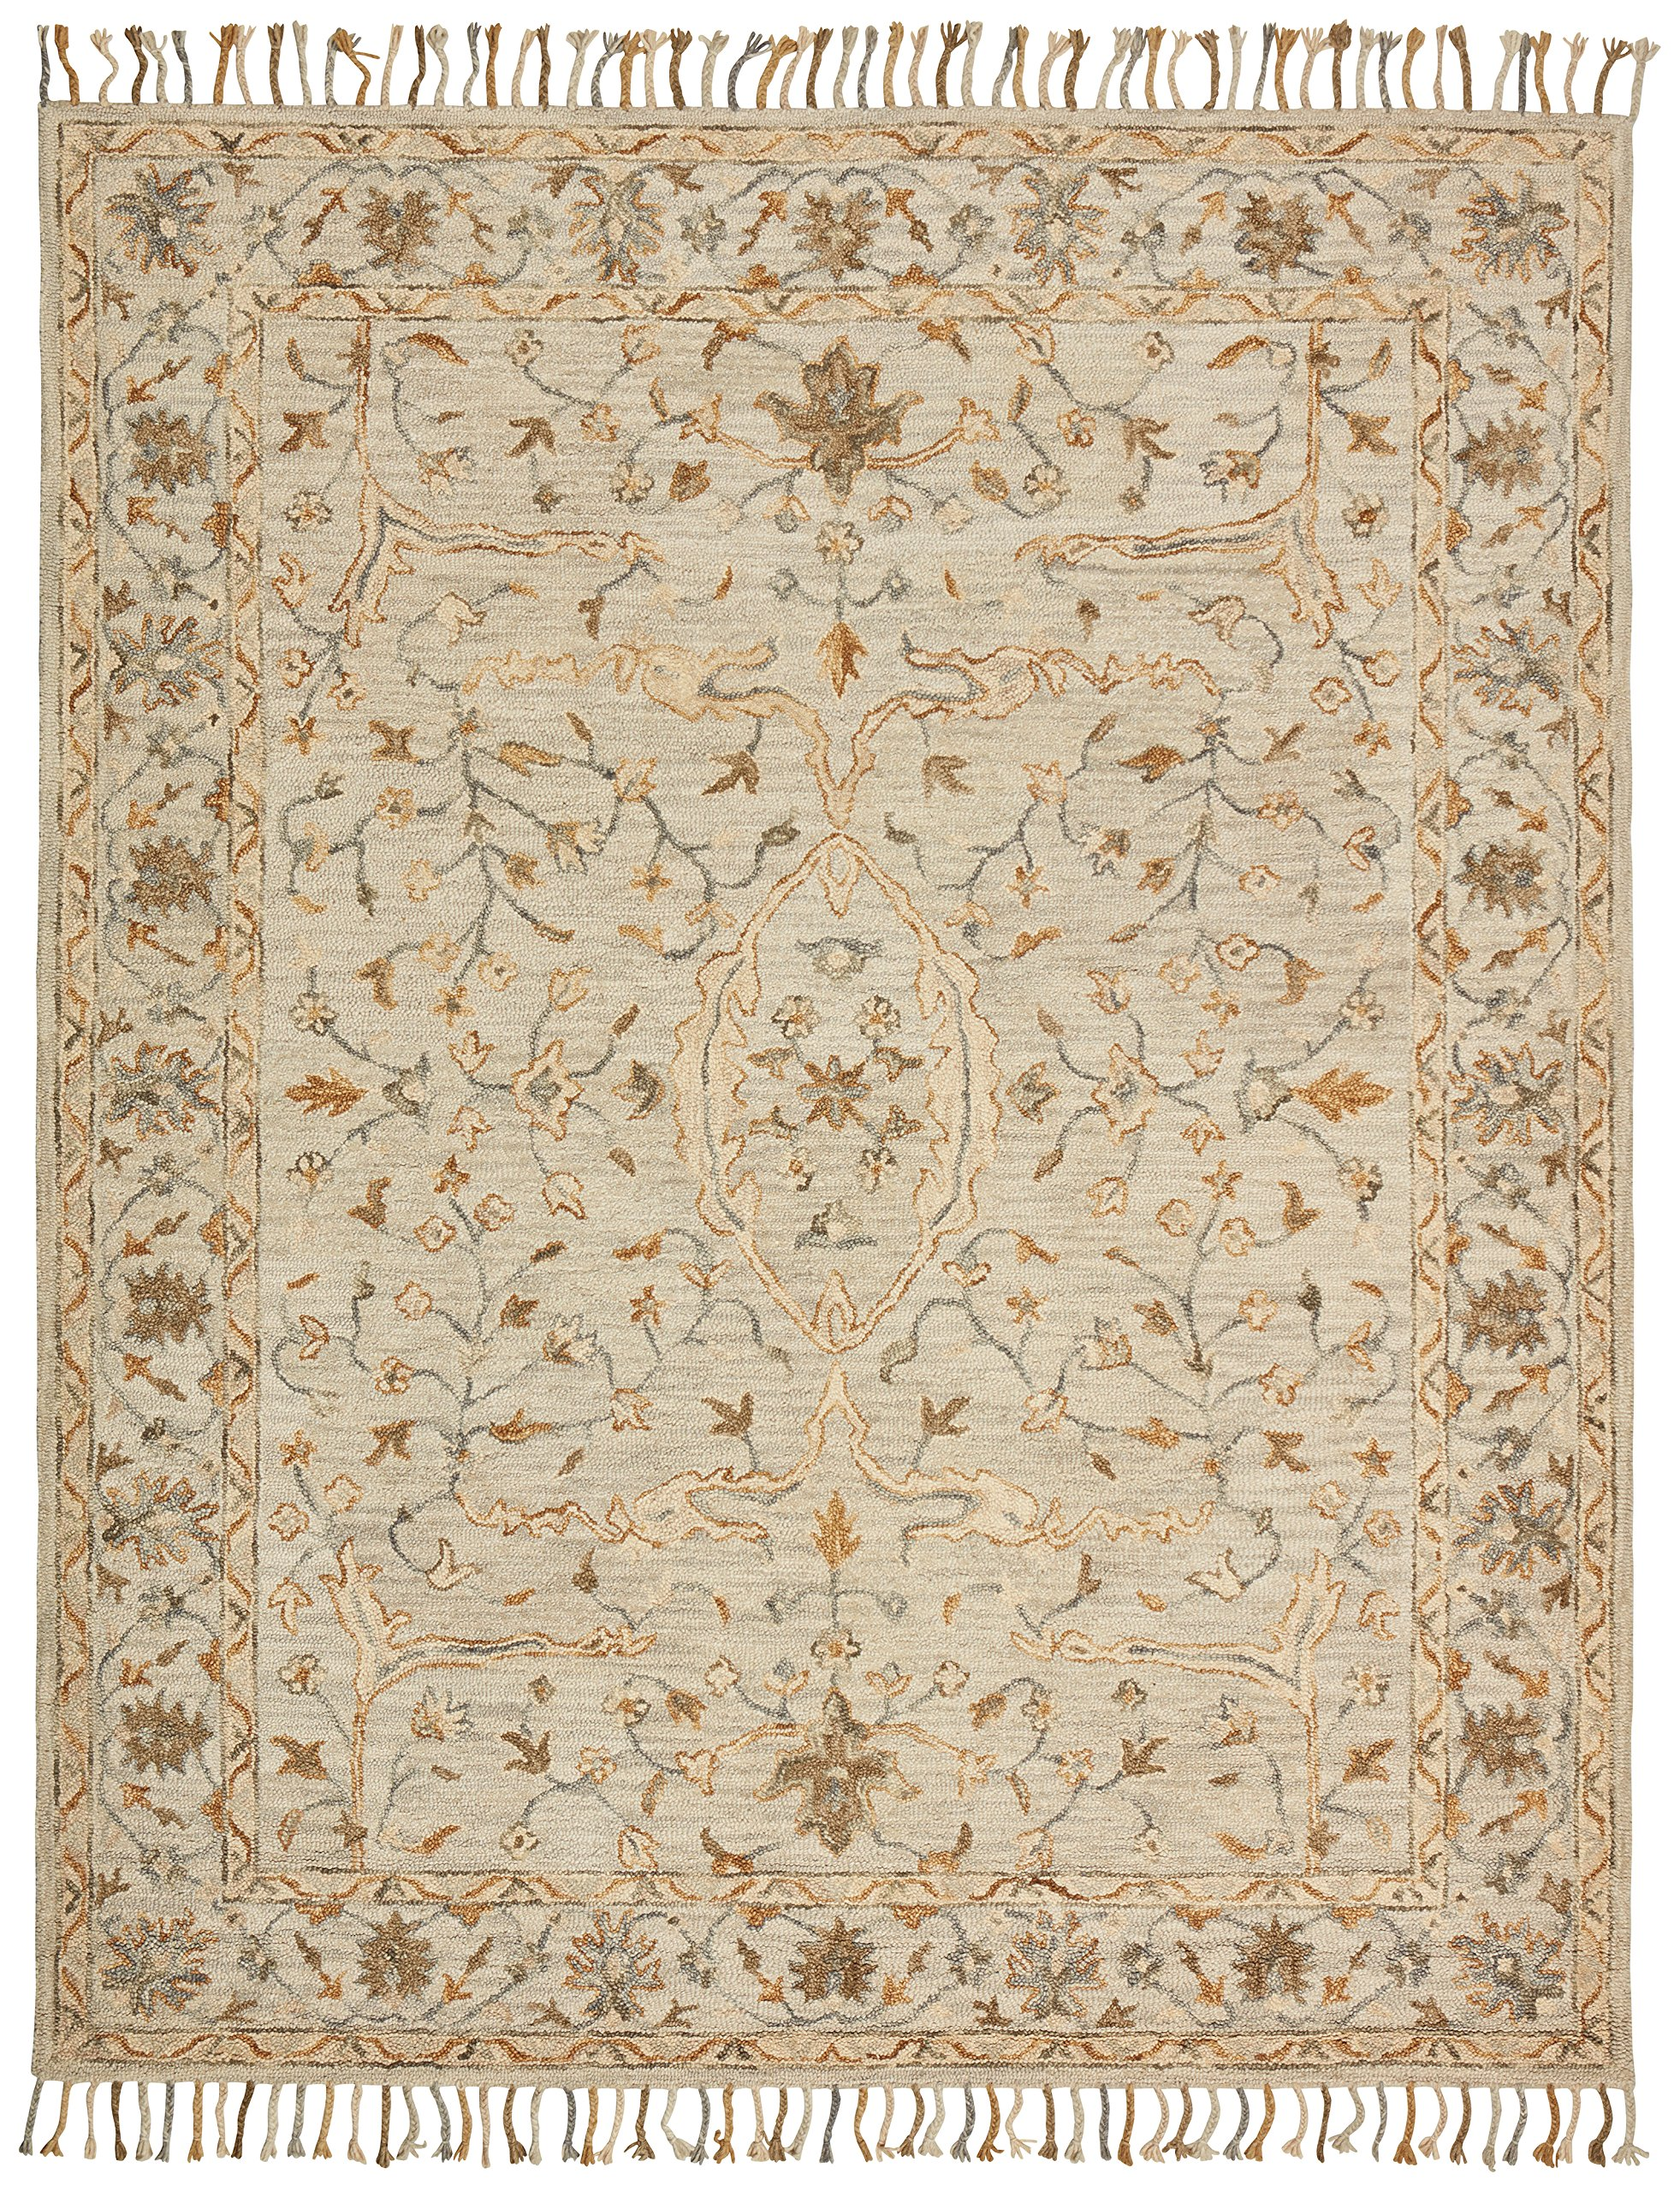 Stone & Beam Cooper Vintage Motif Wool Area Rug, 5' x 8' Charcoal and Beige by Stone & Beam